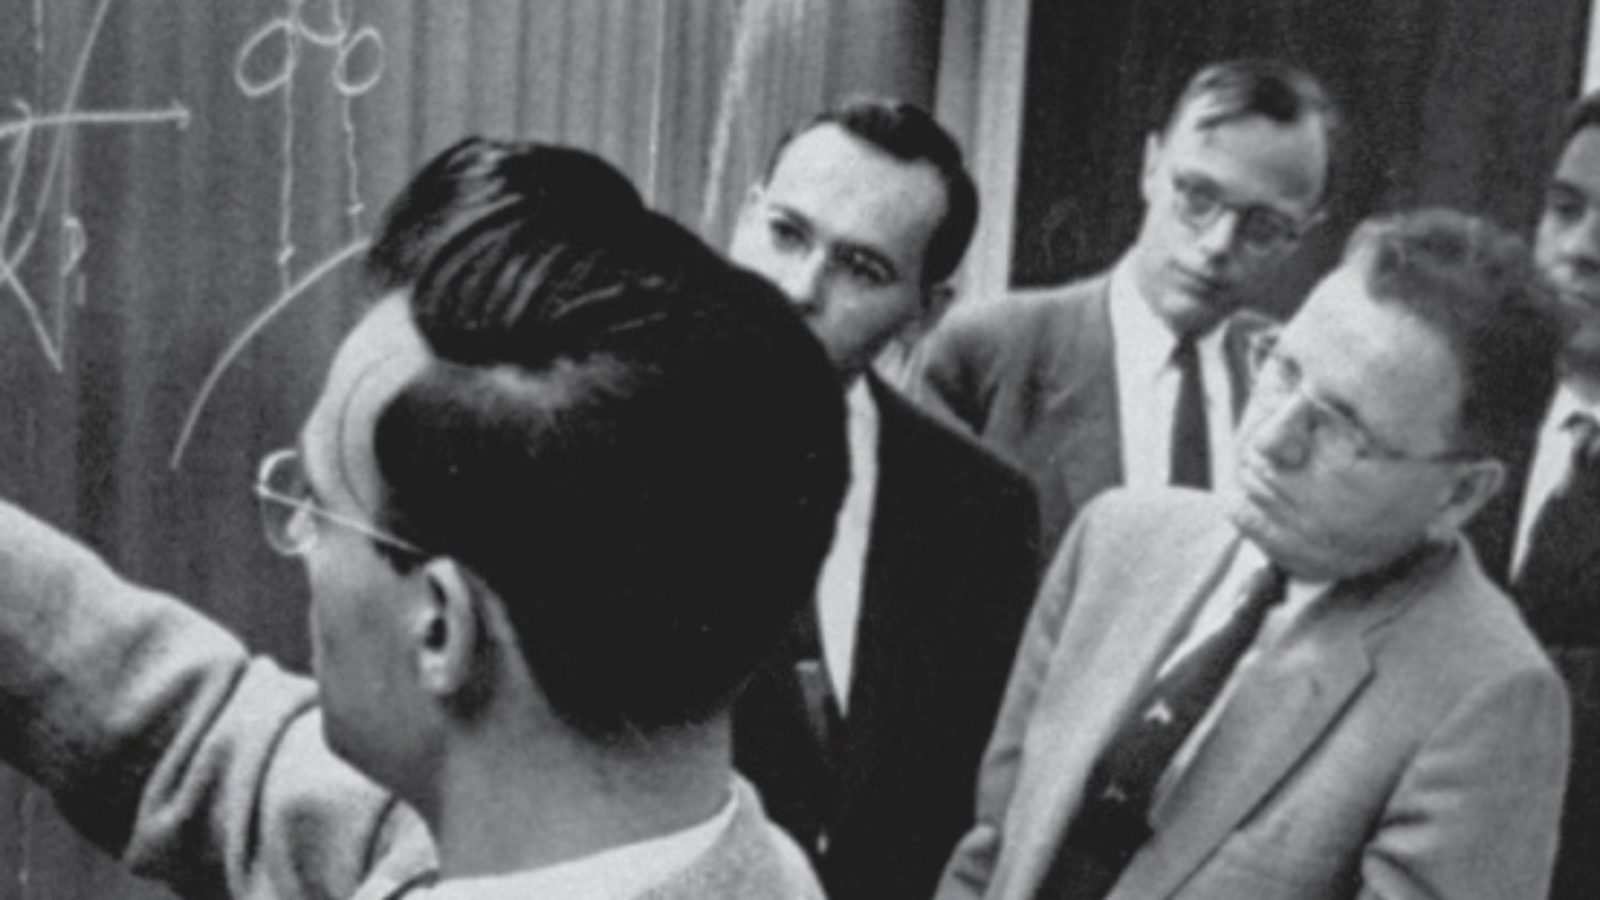 A monochrome photo of men in suits looking at graphs on a blackboard.